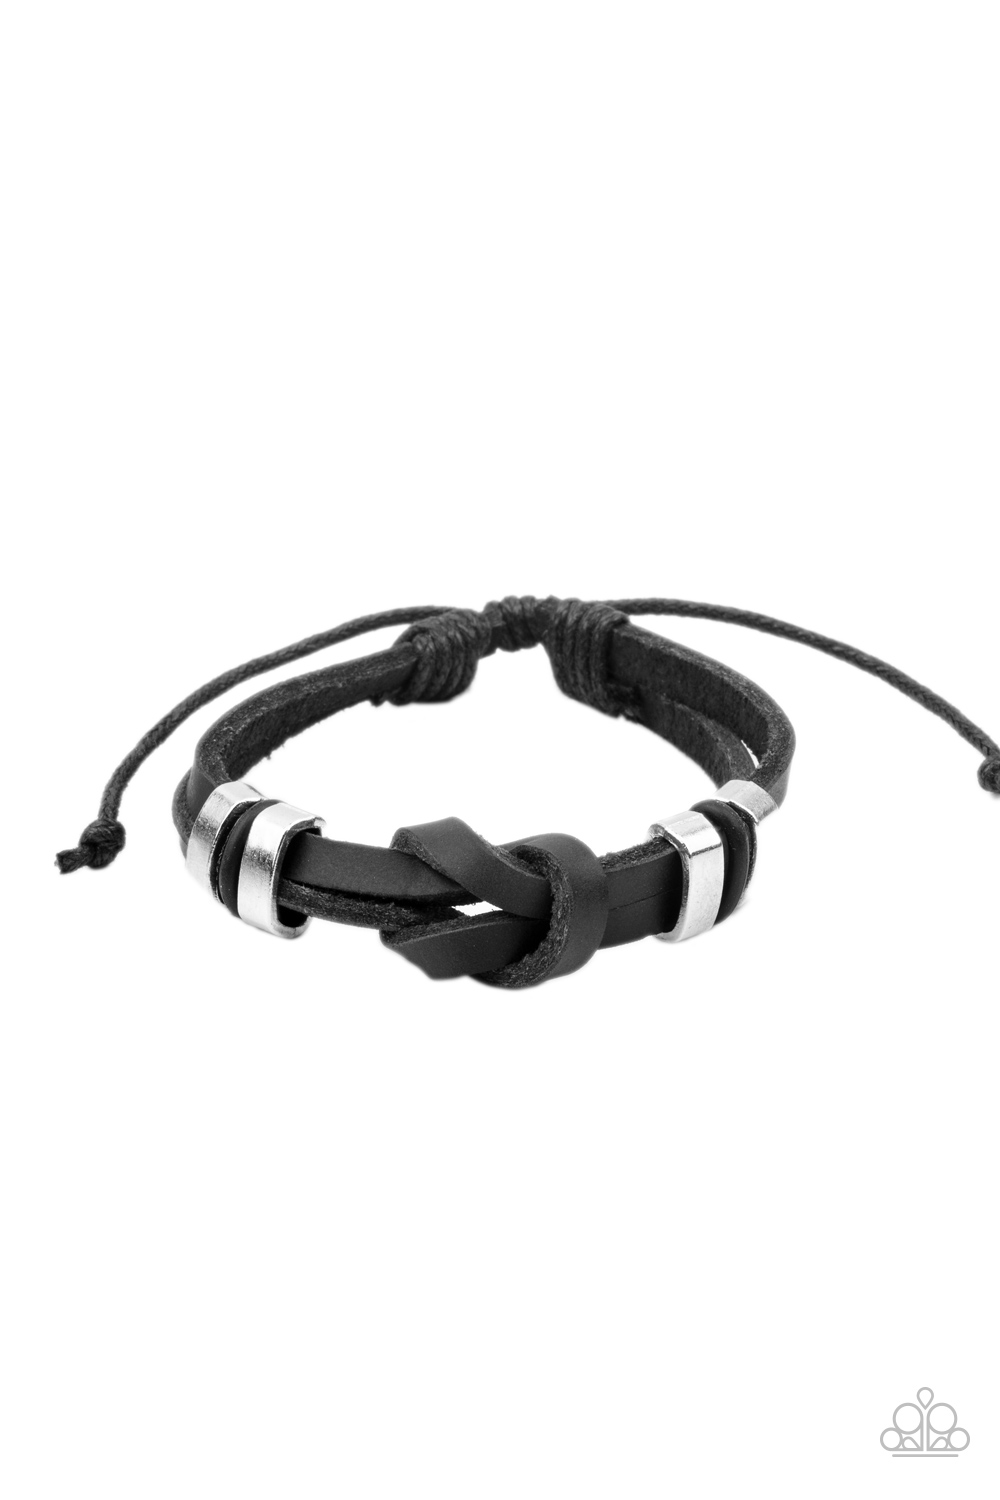 Paparazzi Accessories:  Like It Or KNOT - Black (1036)